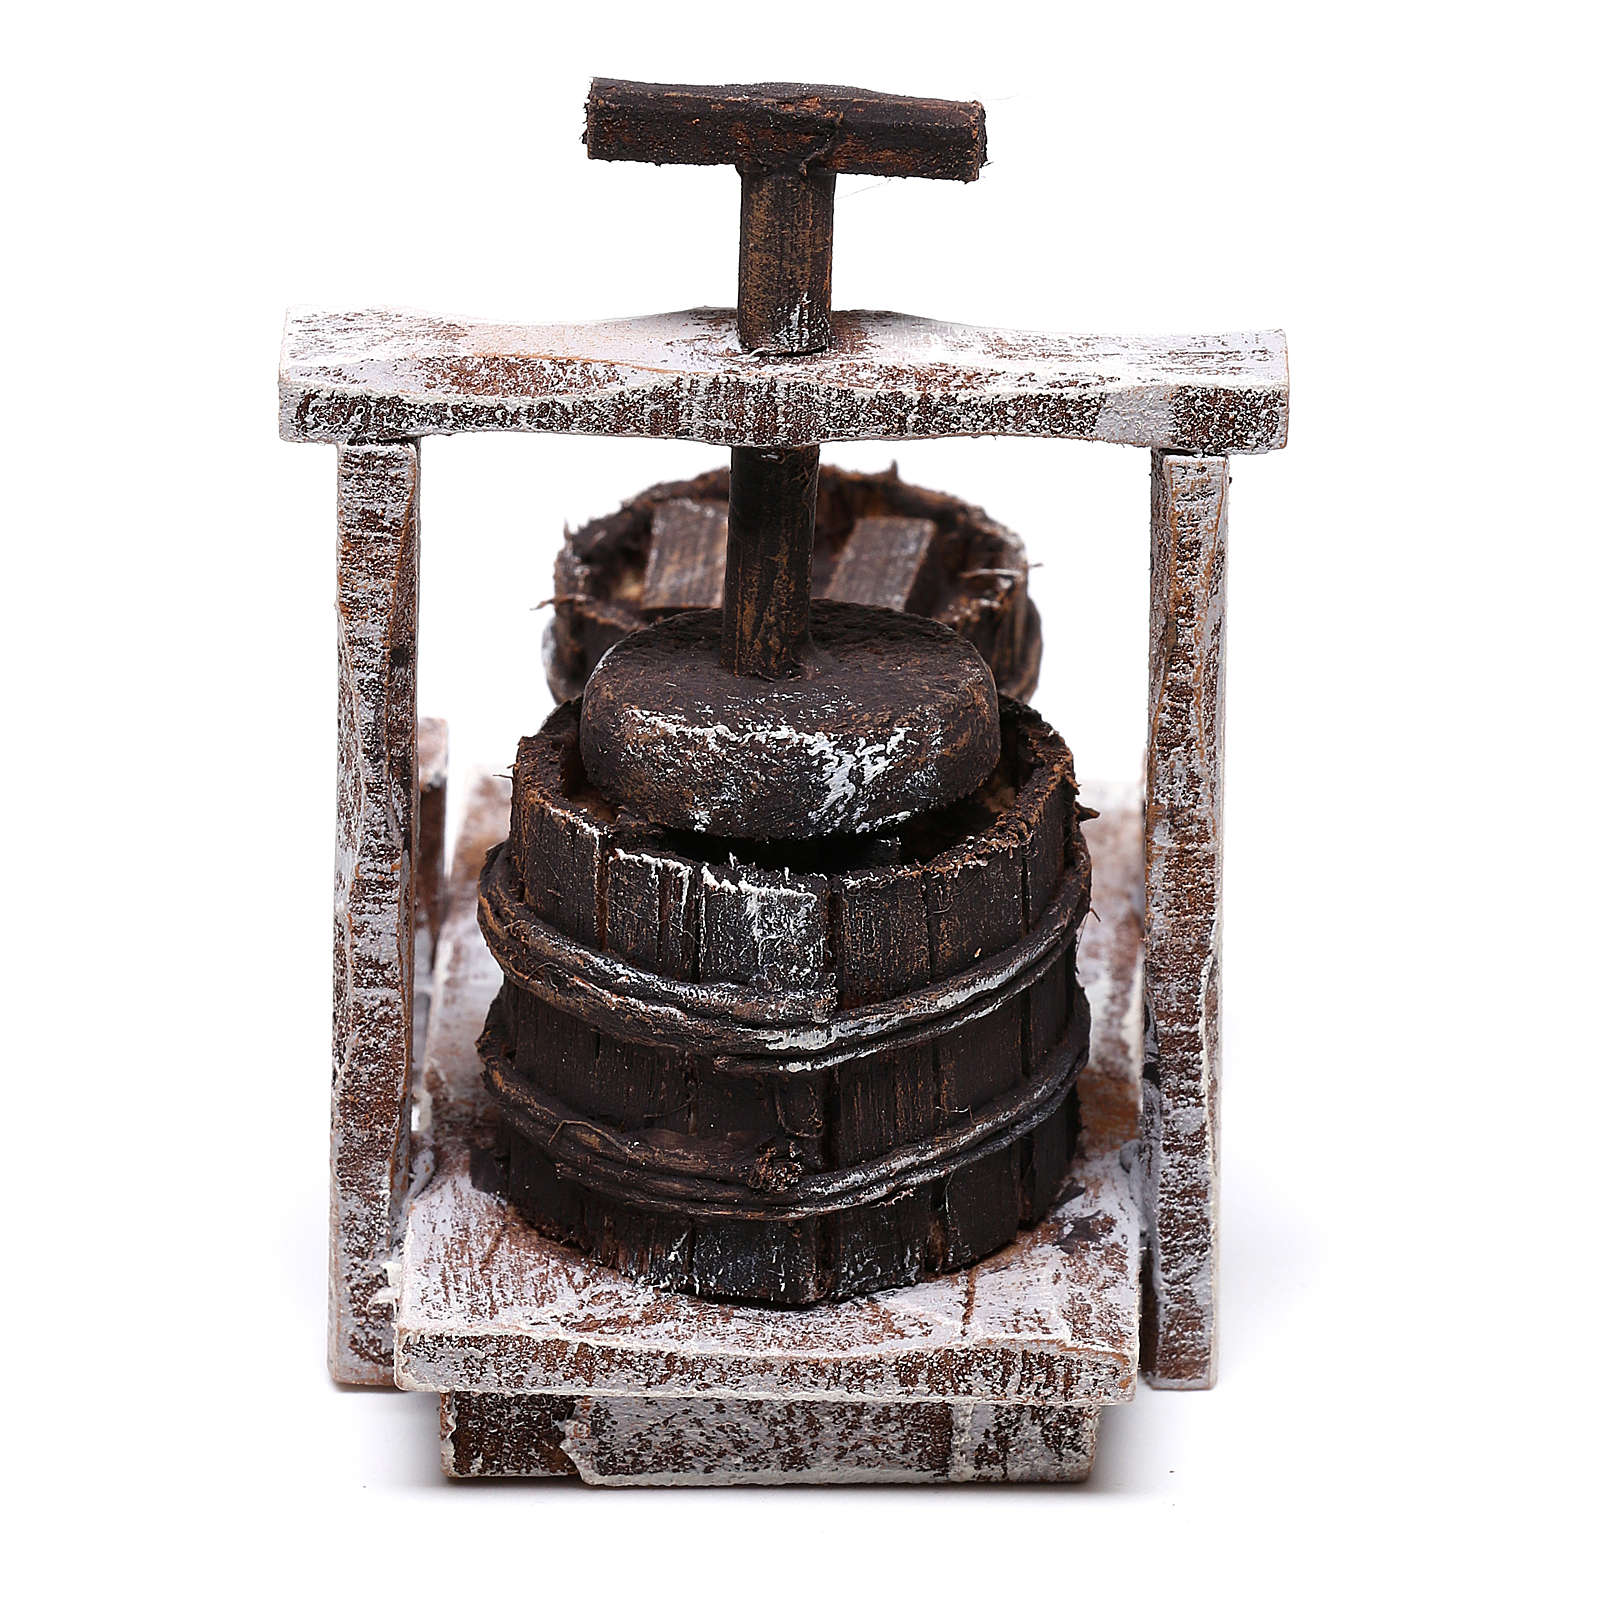 Antique Butter churn 5x5x5 cm, for 10 cm nativity 4